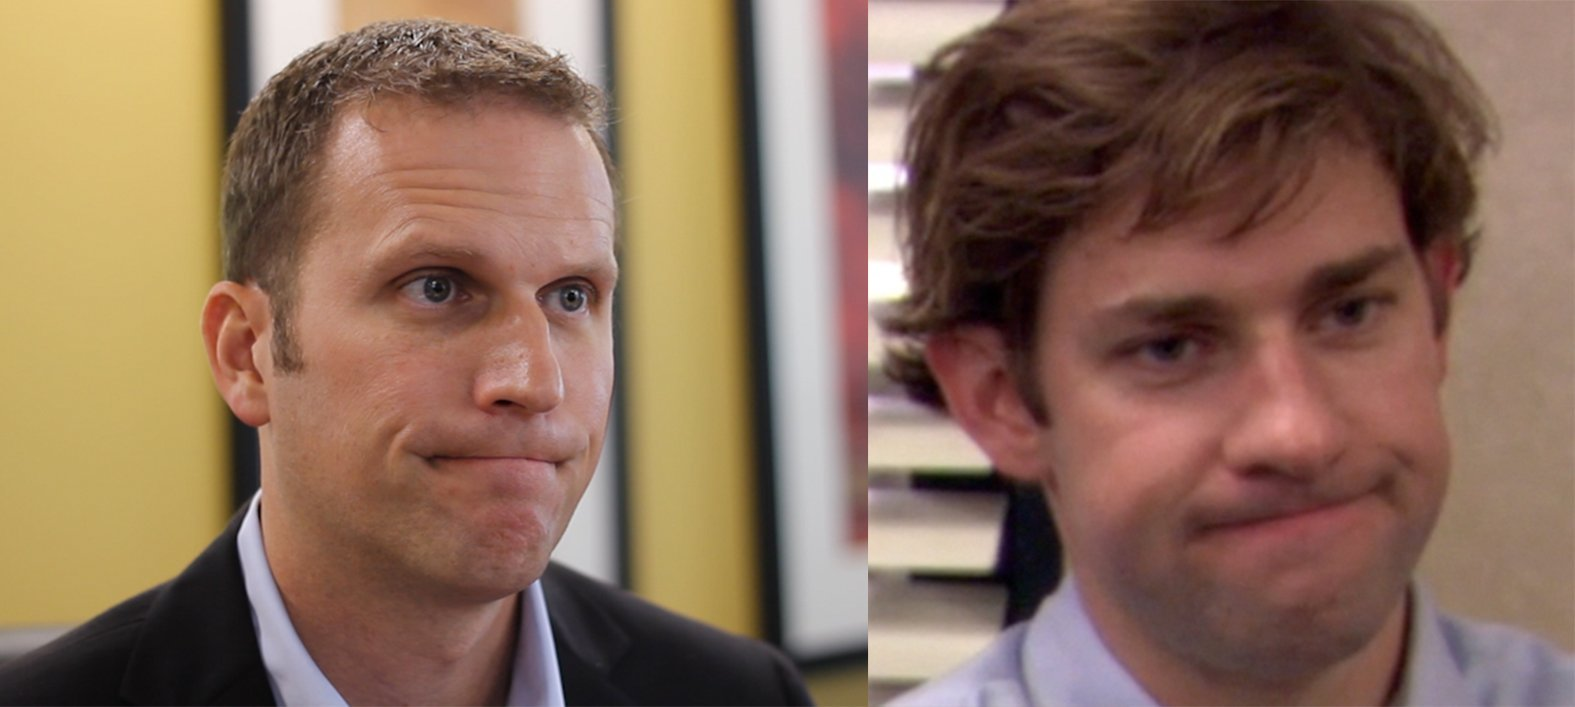 matt looks like jim halbert